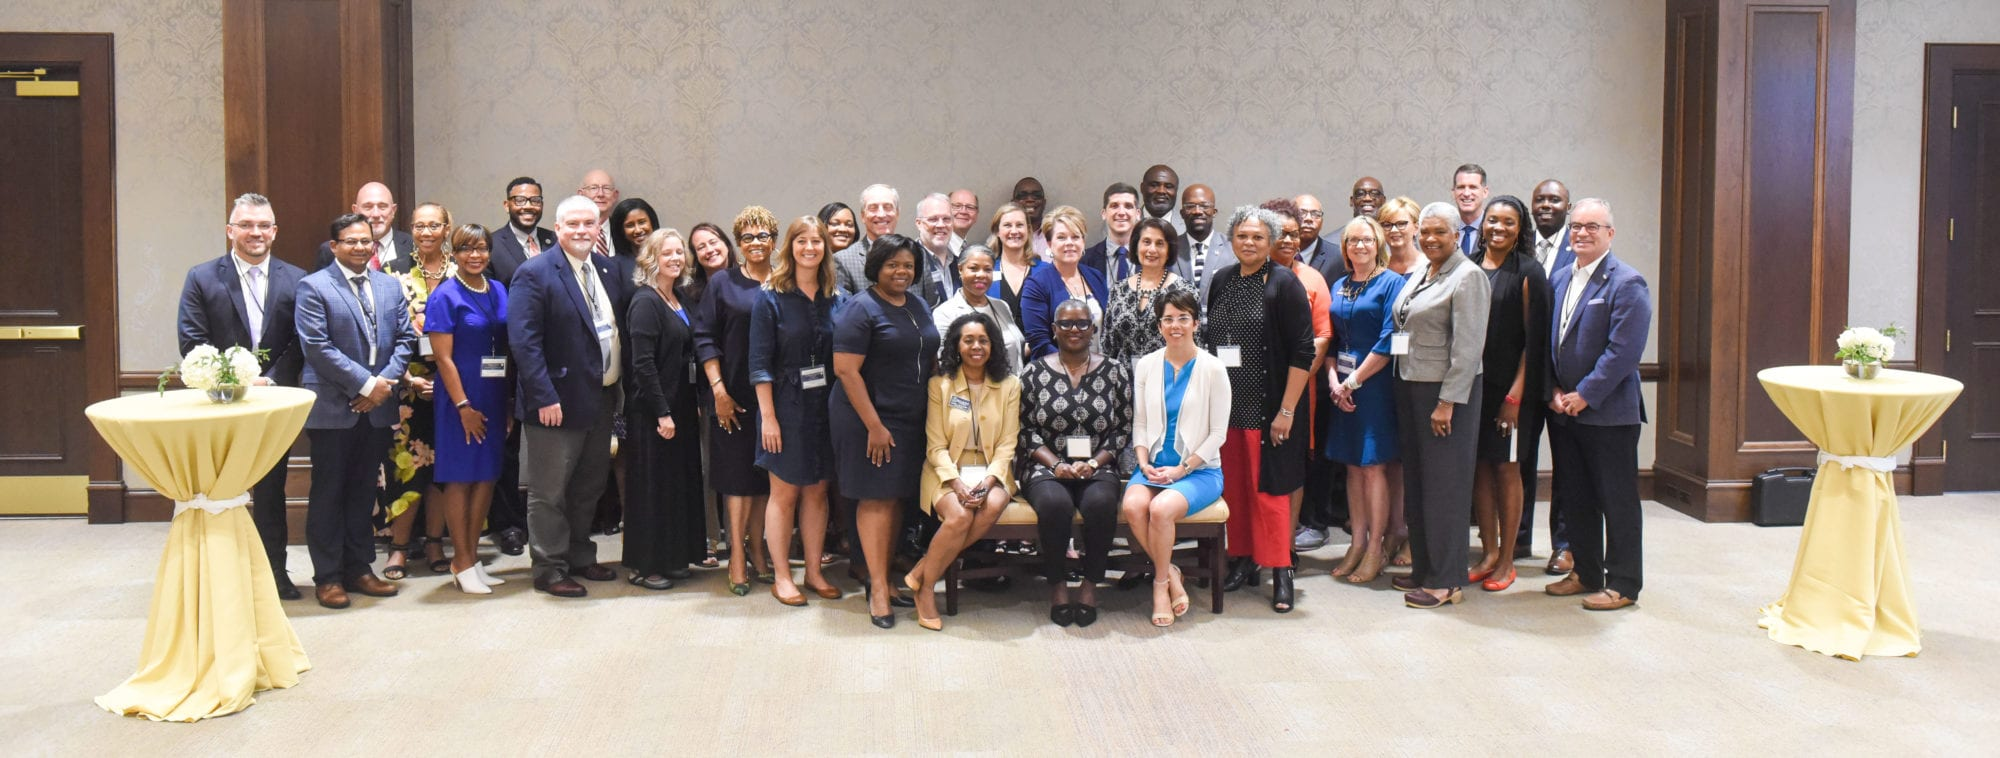 Diversity and Inclusion summit group photo